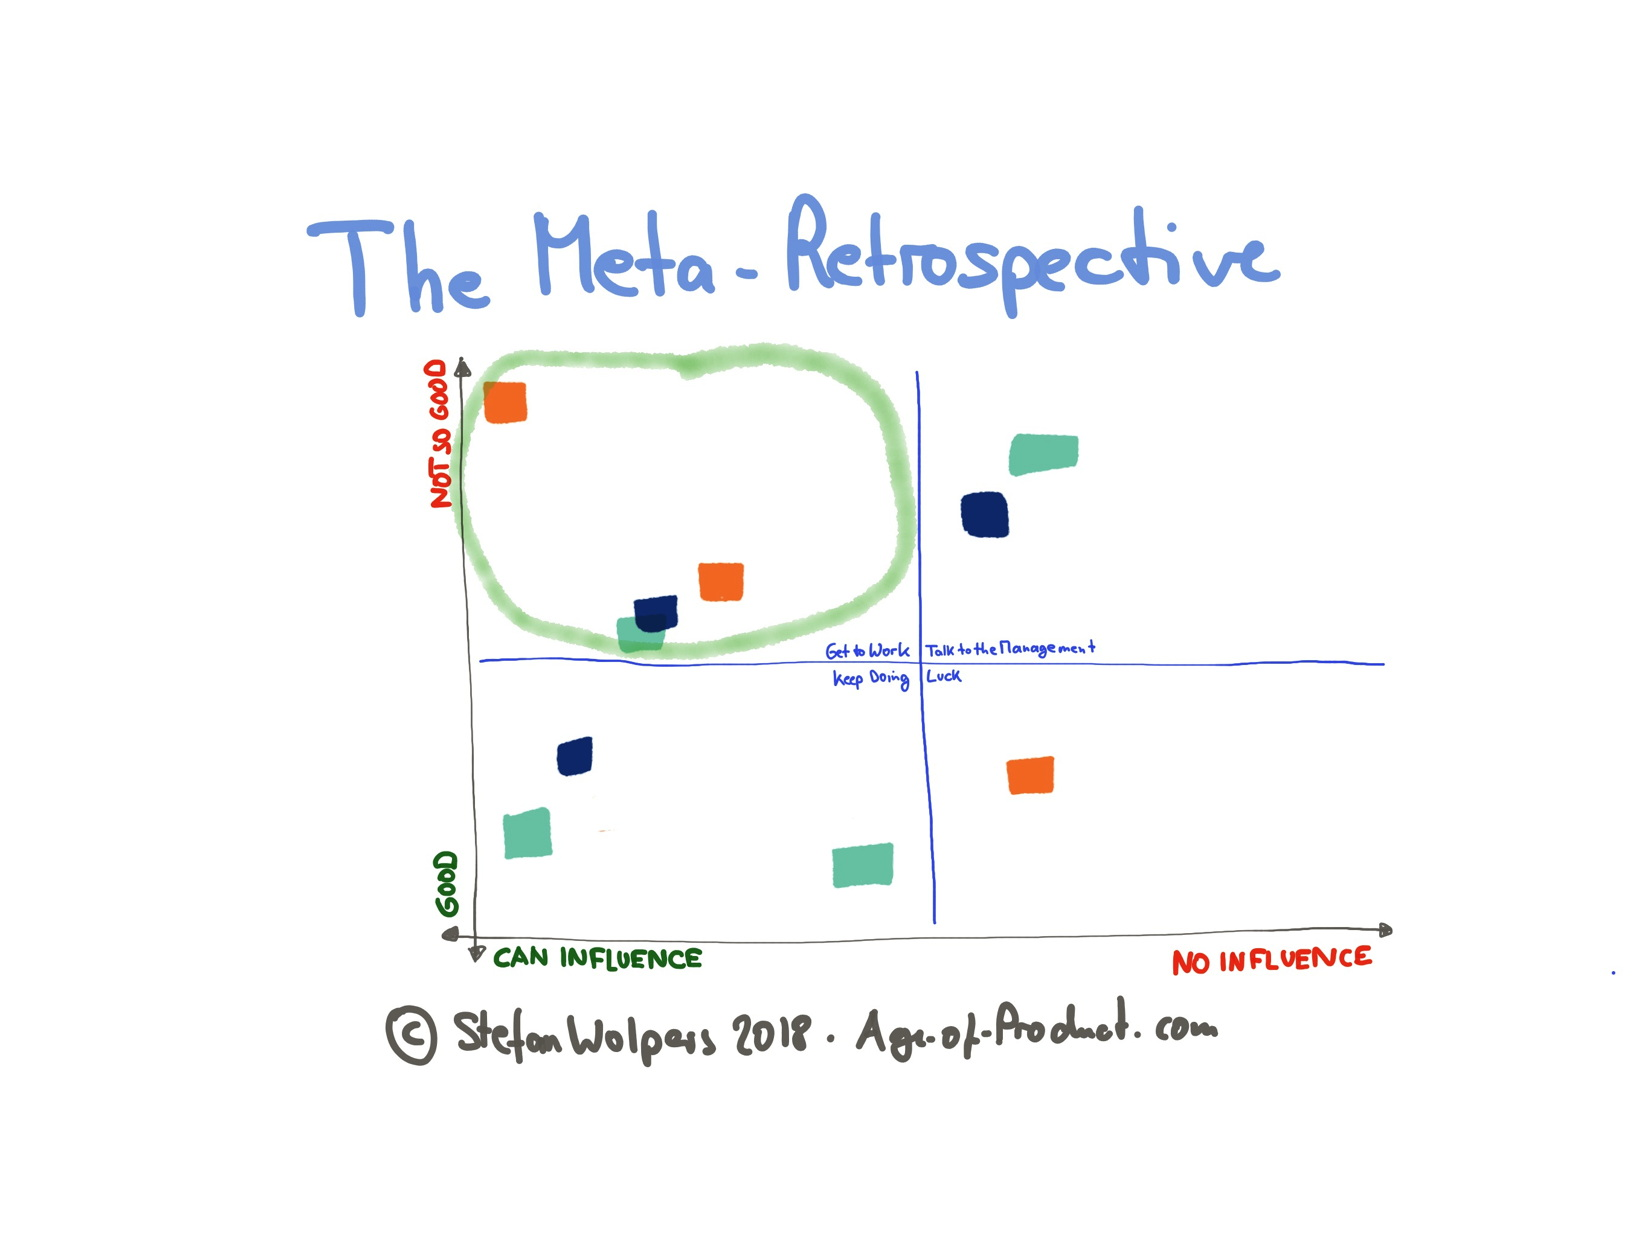 The Meta-Retrospective — How To Get Customers and Stakeholders Onboard